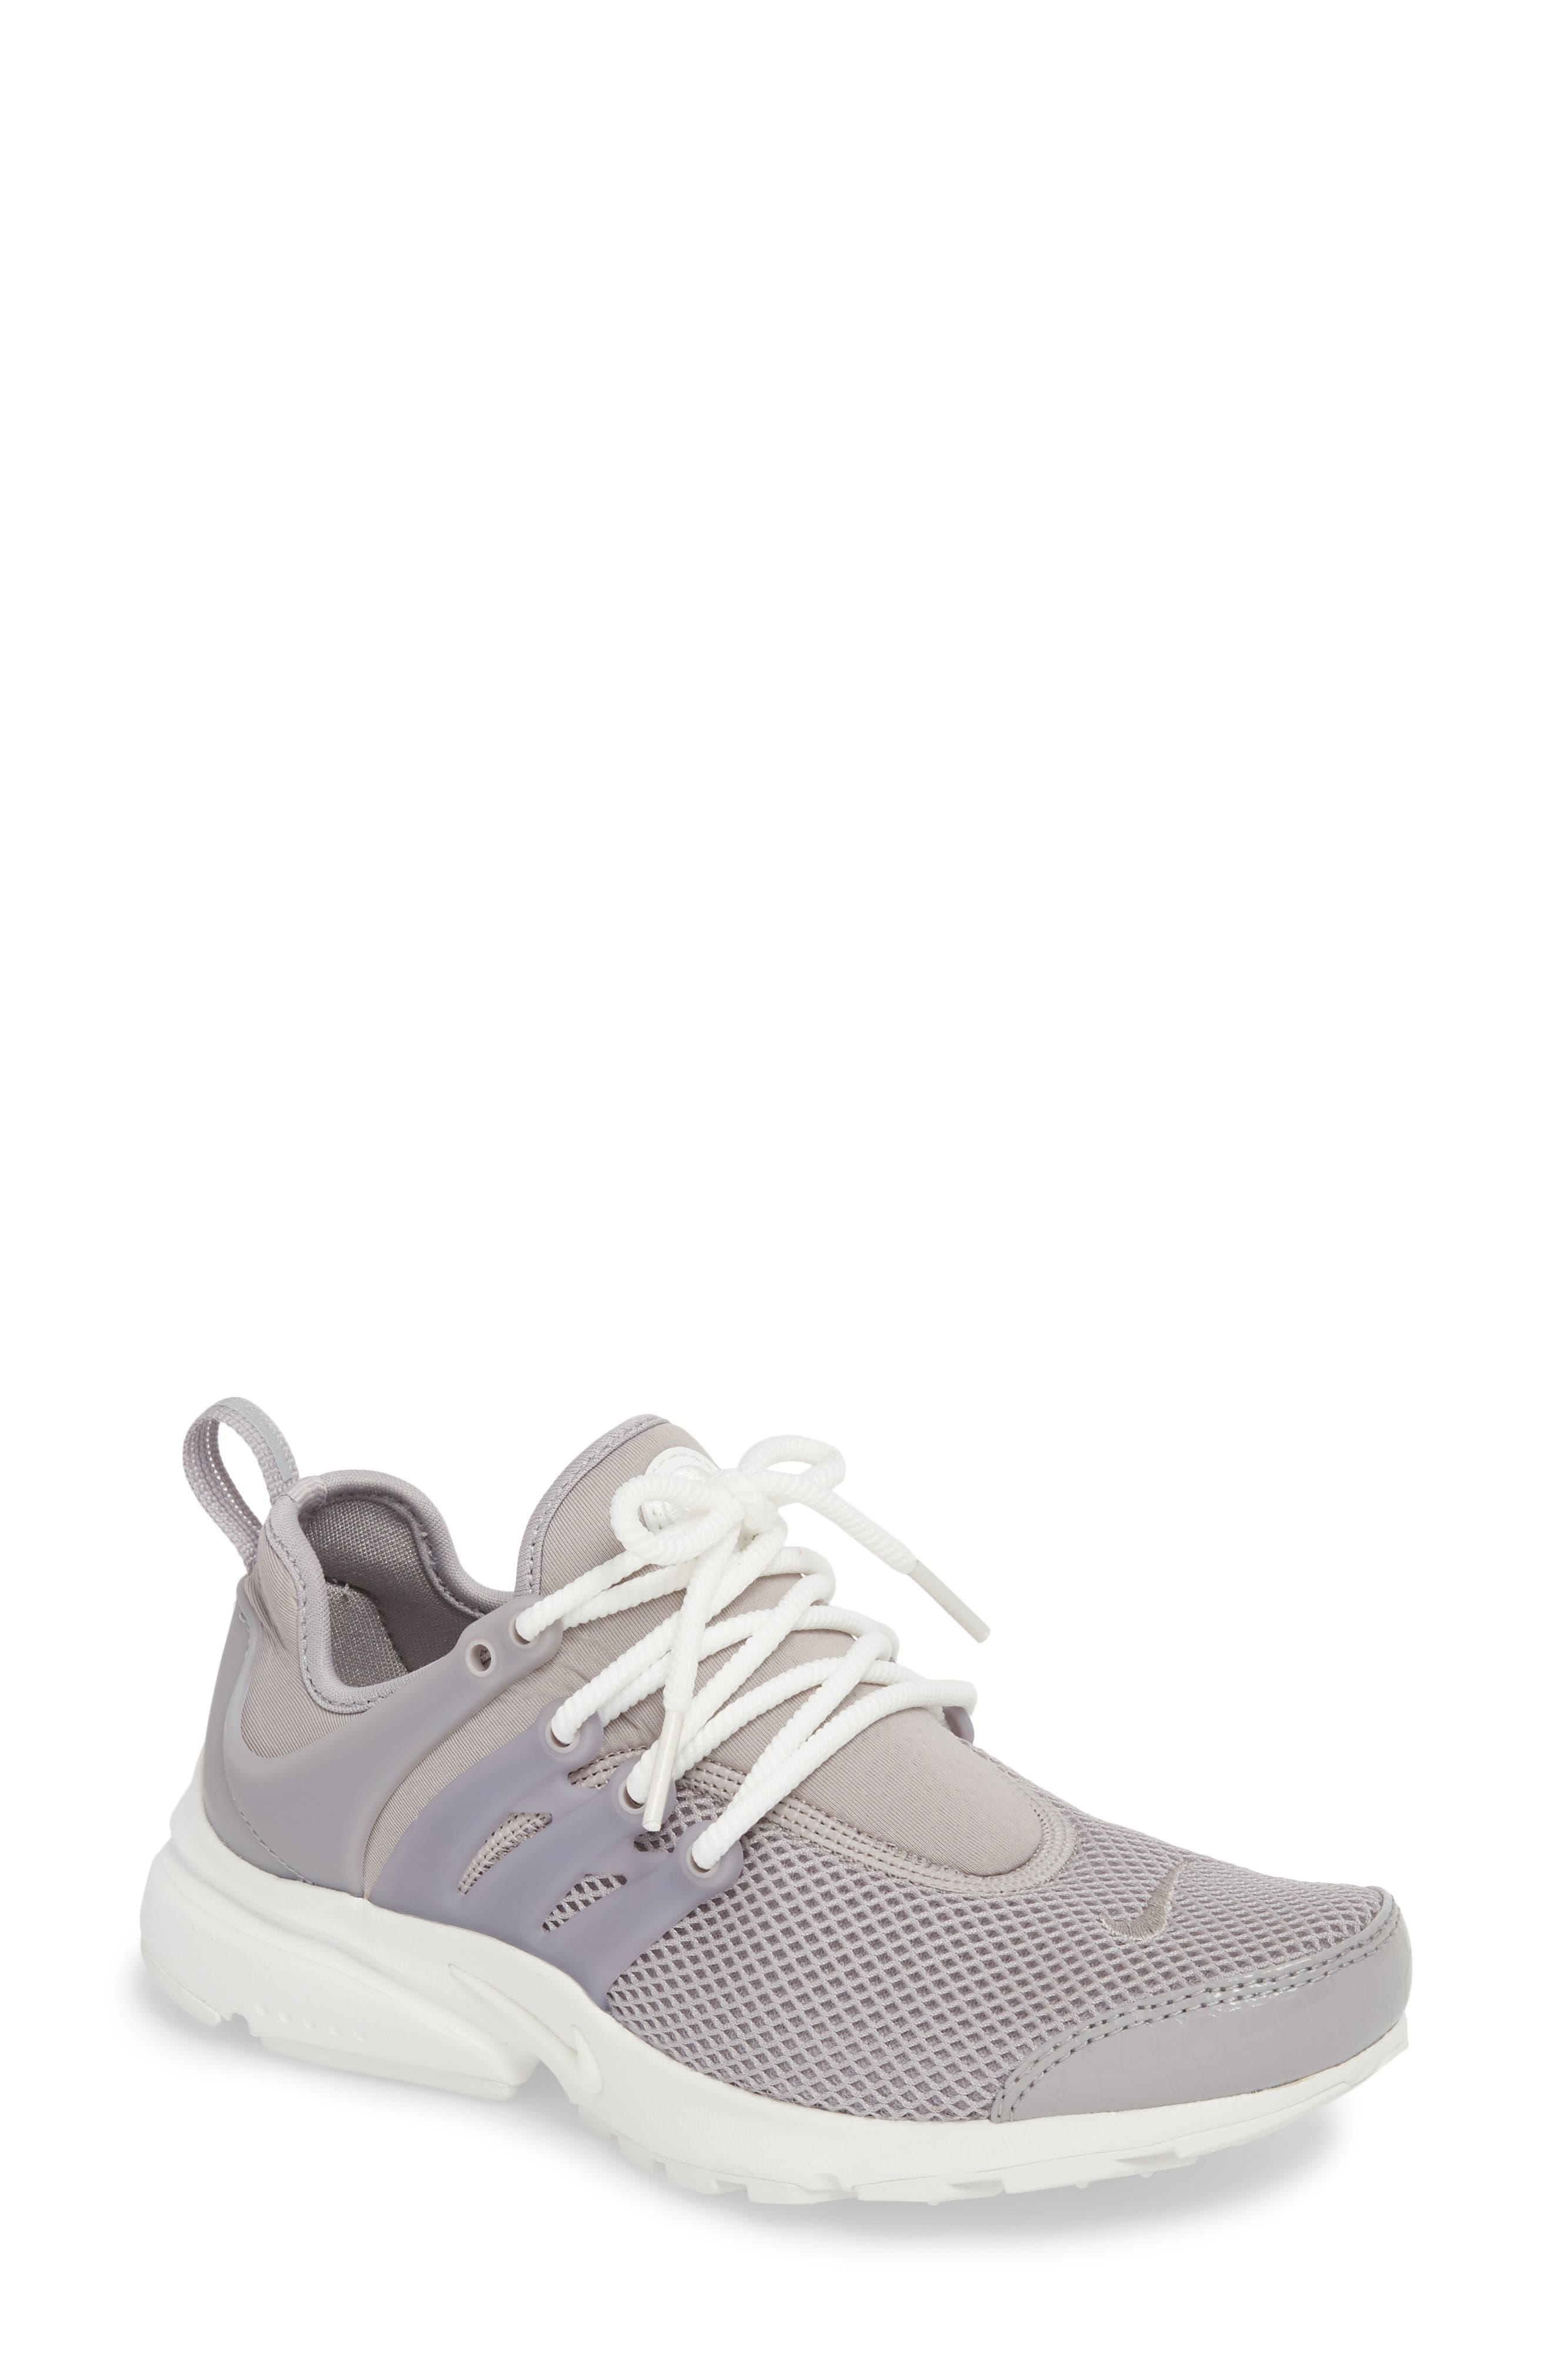 Air Presto SE Sneaker,                             Main thumbnail 1, color,                             Atmosphere Grey